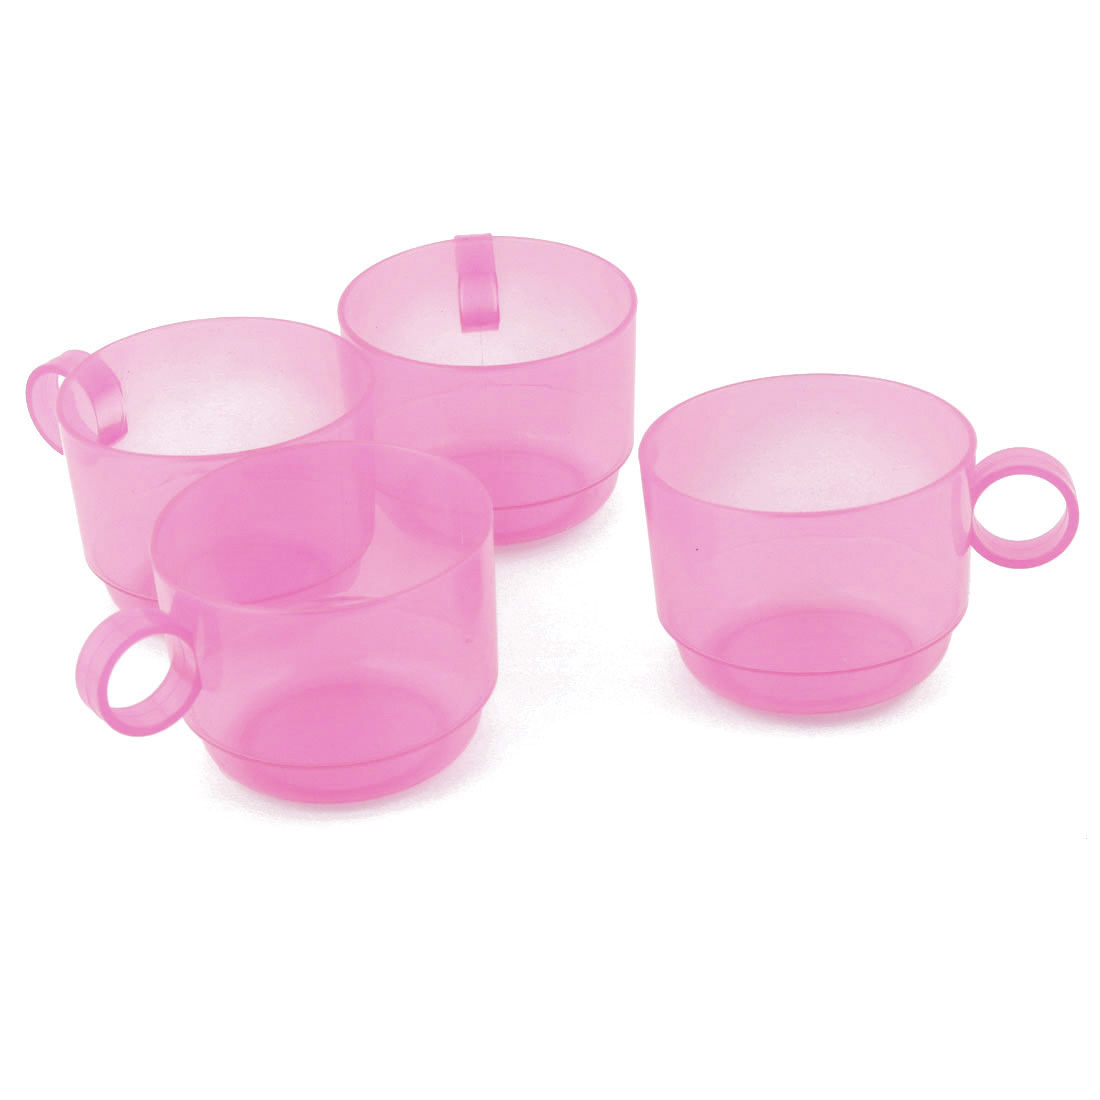 Home Cafe Plastic Circle Handle Portable Water Tea Milk Coffee Storage Drinking Cup Mug Pink 4pcs